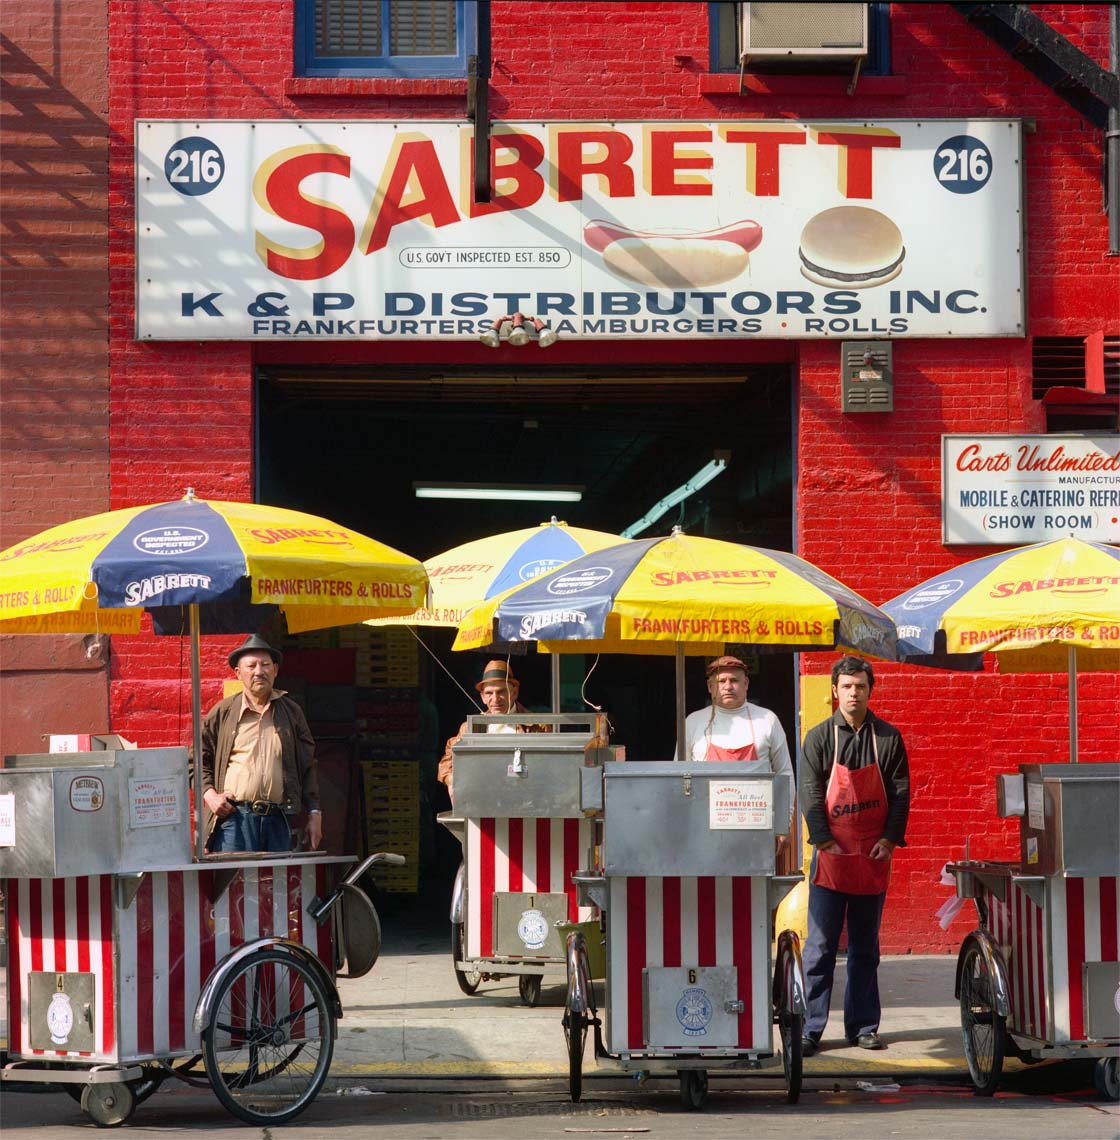 SABRETT HOT DOG VENDORS; NEW YORK, NY